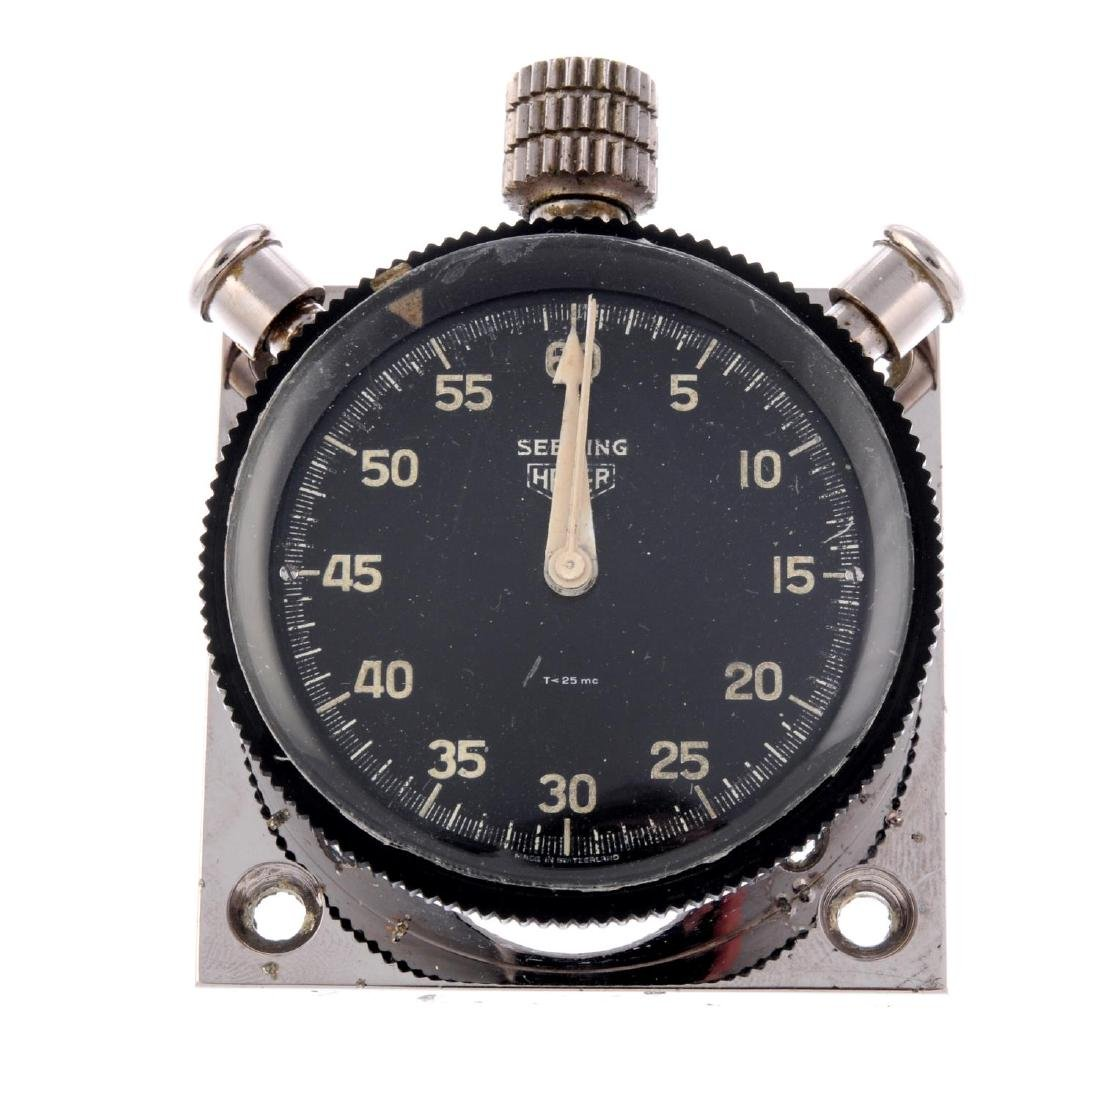 A Sebring dash timer by Heuer. Base metal case with